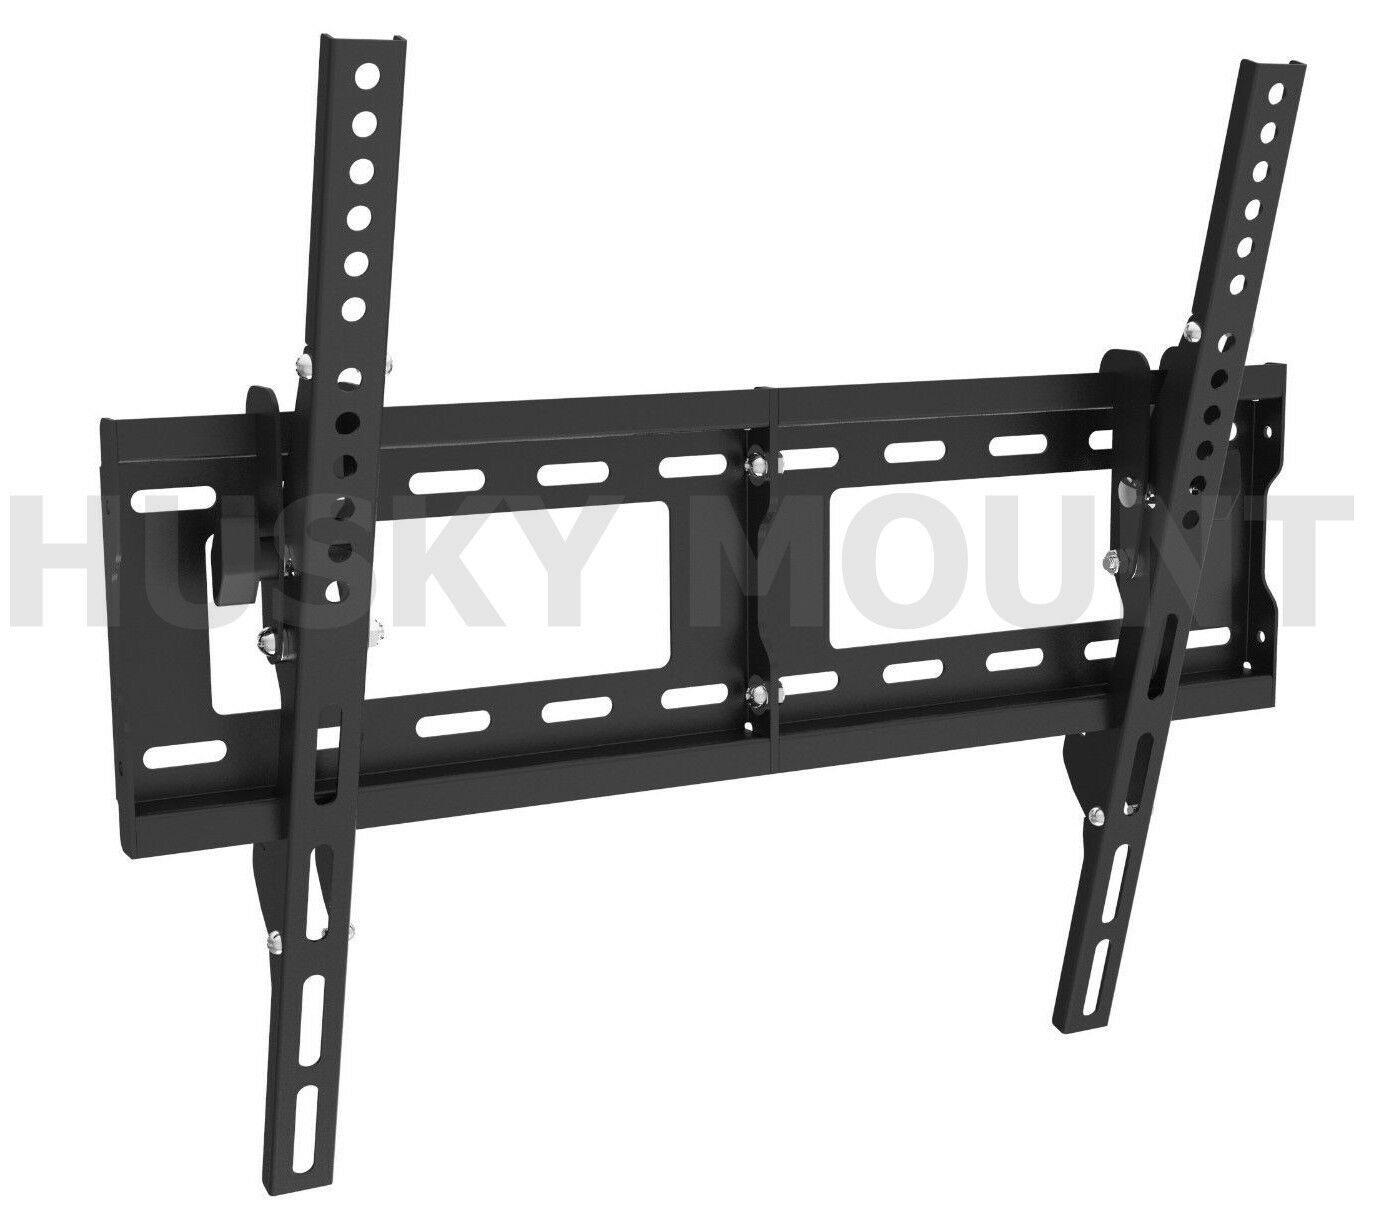 LCD LED Plasma Flat Tilt TV Wall Mount Bracket 32 40 42 46 50 52 55 60 65 Inch